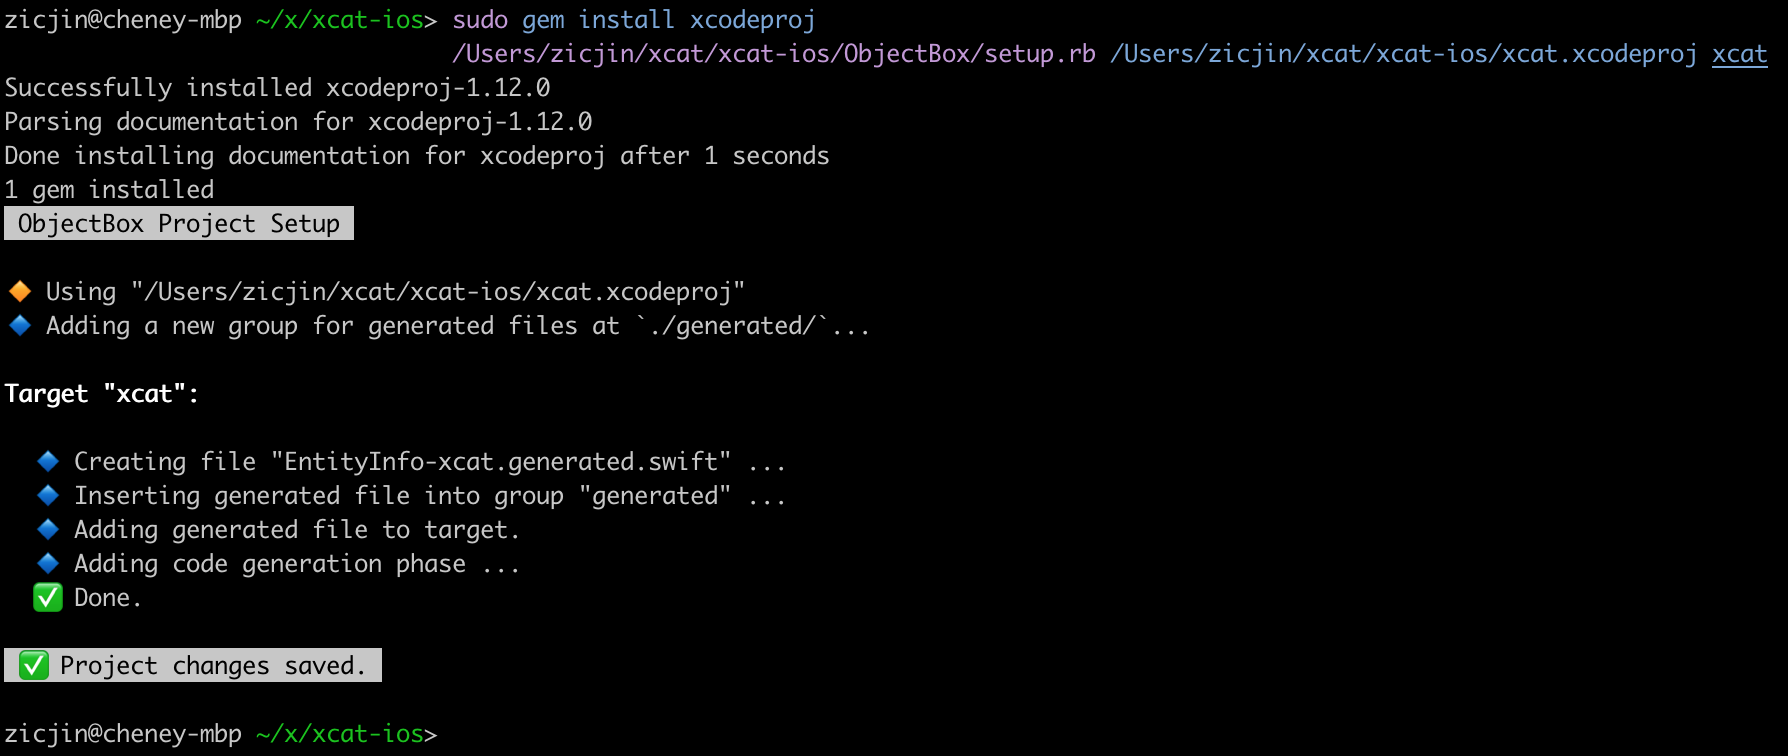 Gem Install build fail: the element xcremoteswiftpackagereference is not